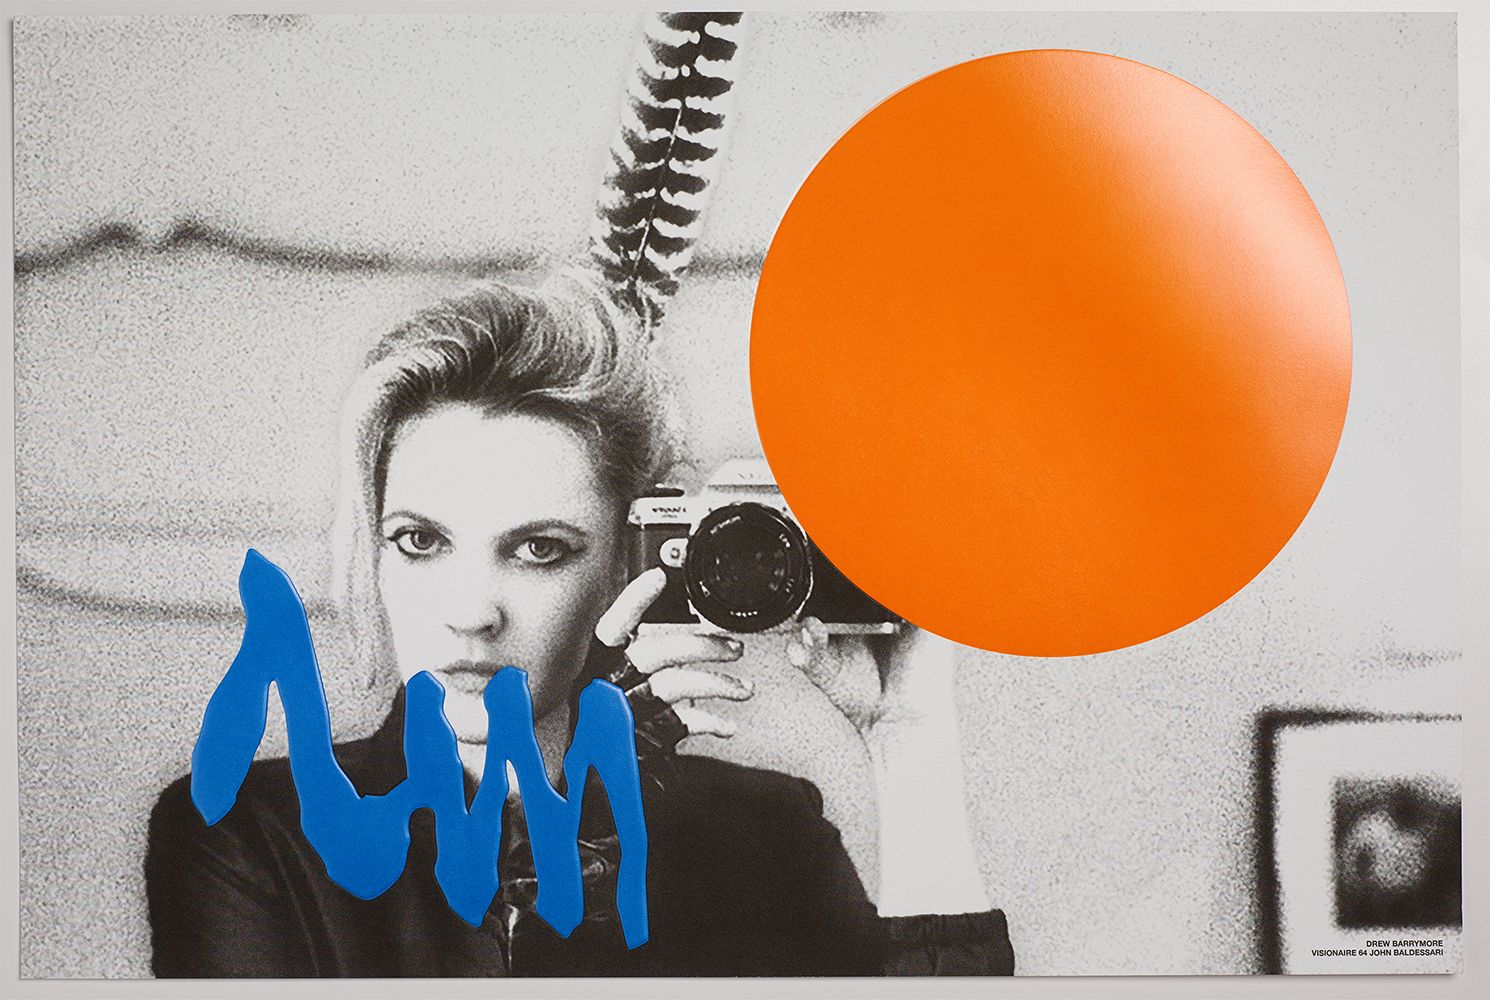 Visionaire and John Baldessari recast the selfie as the artwork of the moment. See more images from the issue and extras from Visionaire co-founder Cecilia Dean on vf.com